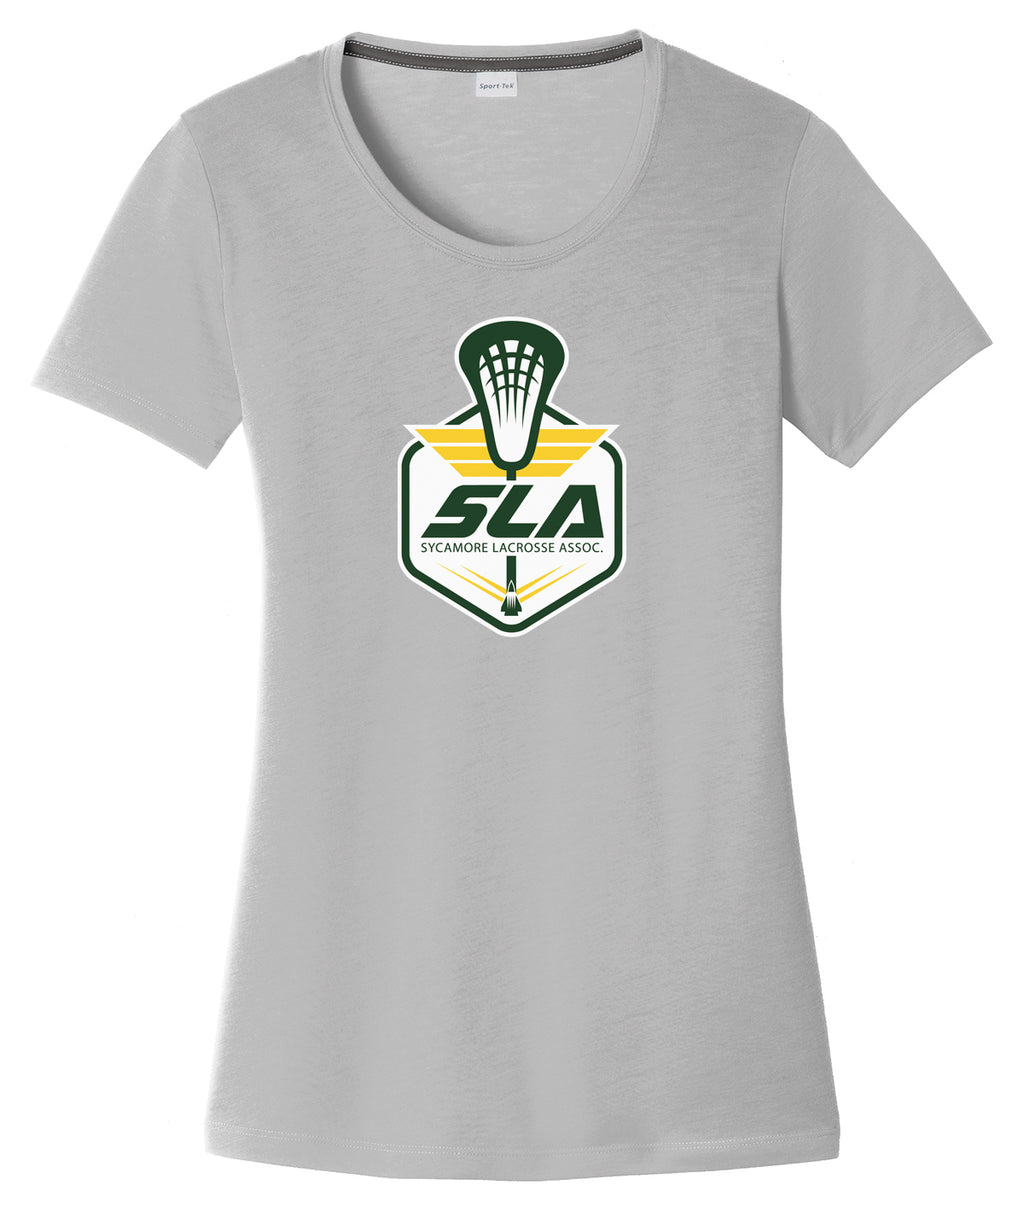 Sycamore Lacrosse Association Women's Silver CottonTouch Performance T-Shirt